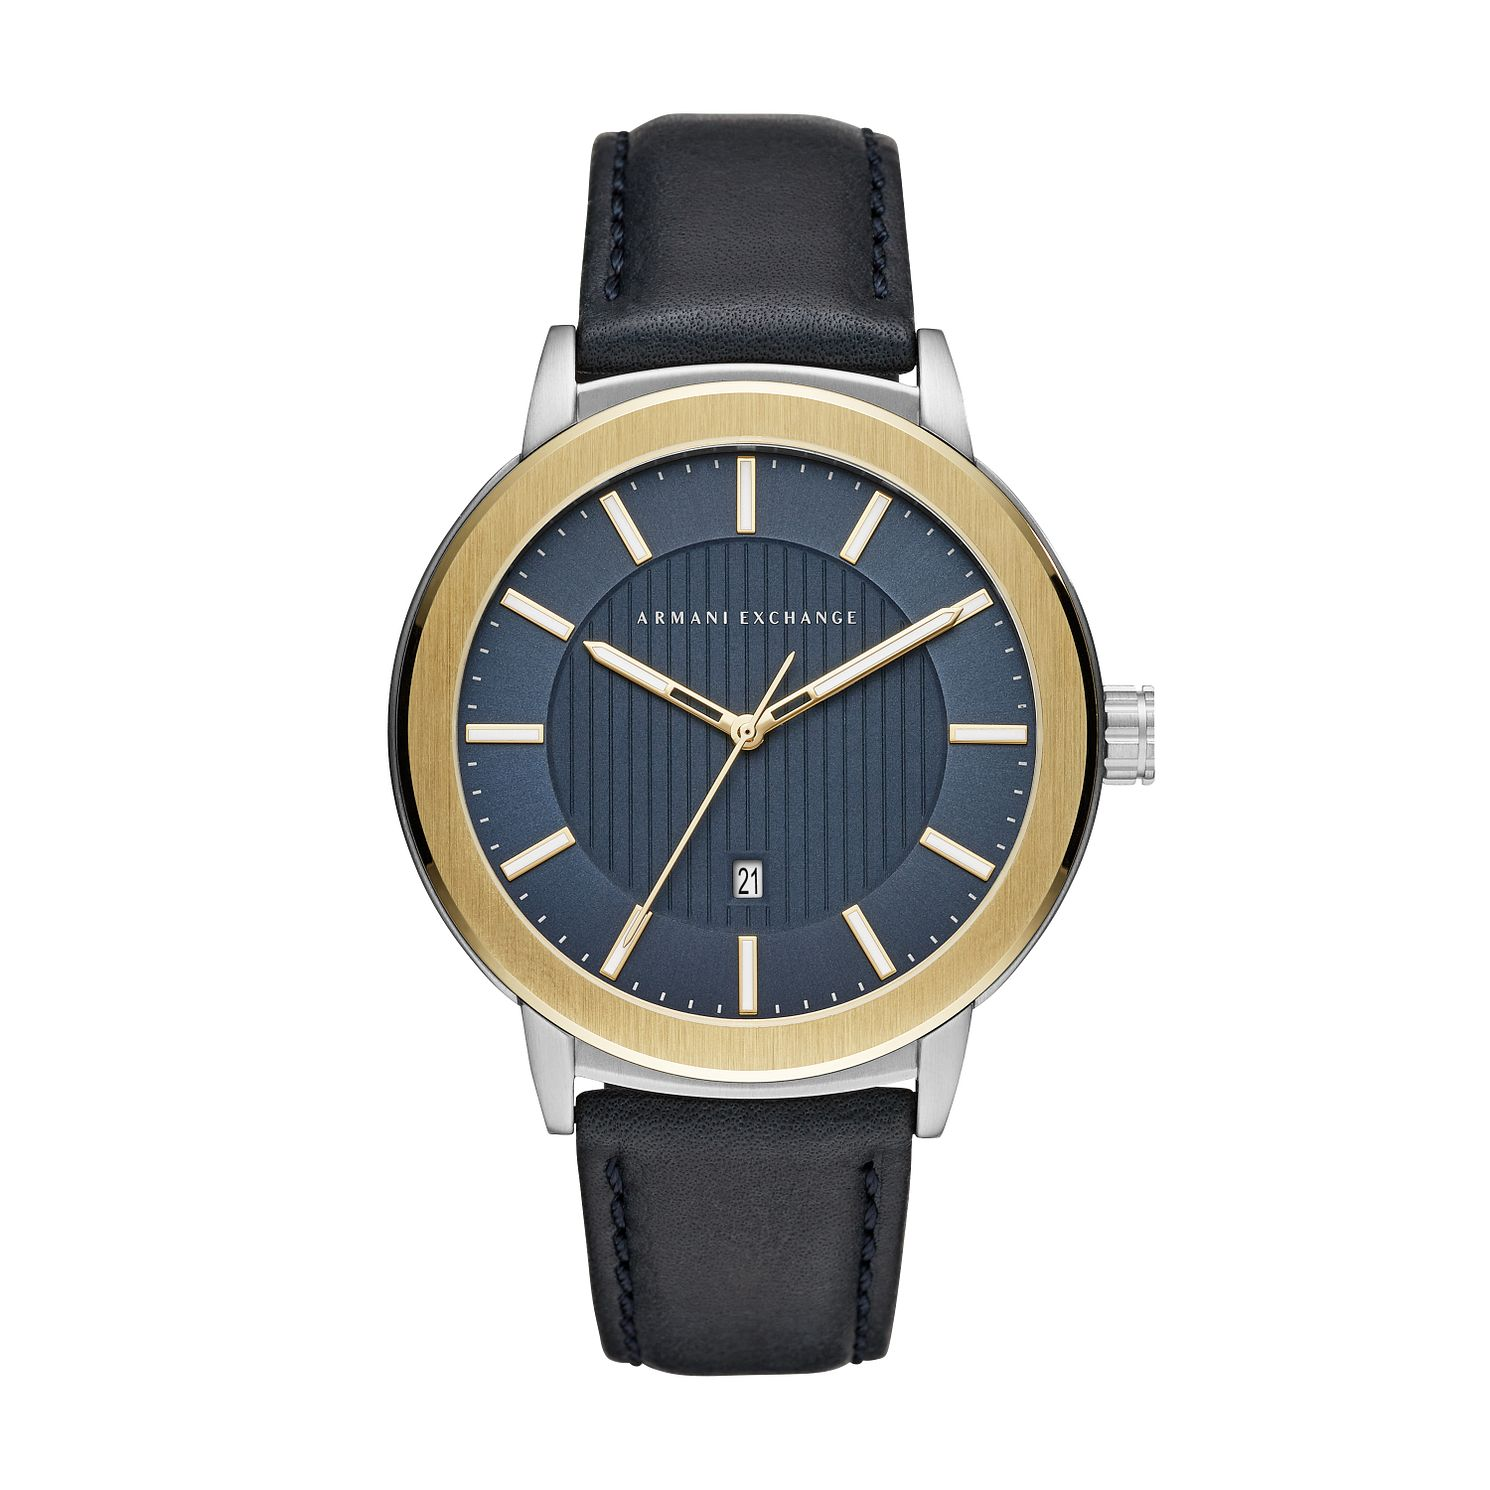 Armani Exchange Men's Blue Leather Strap Watch - Product number 4172906